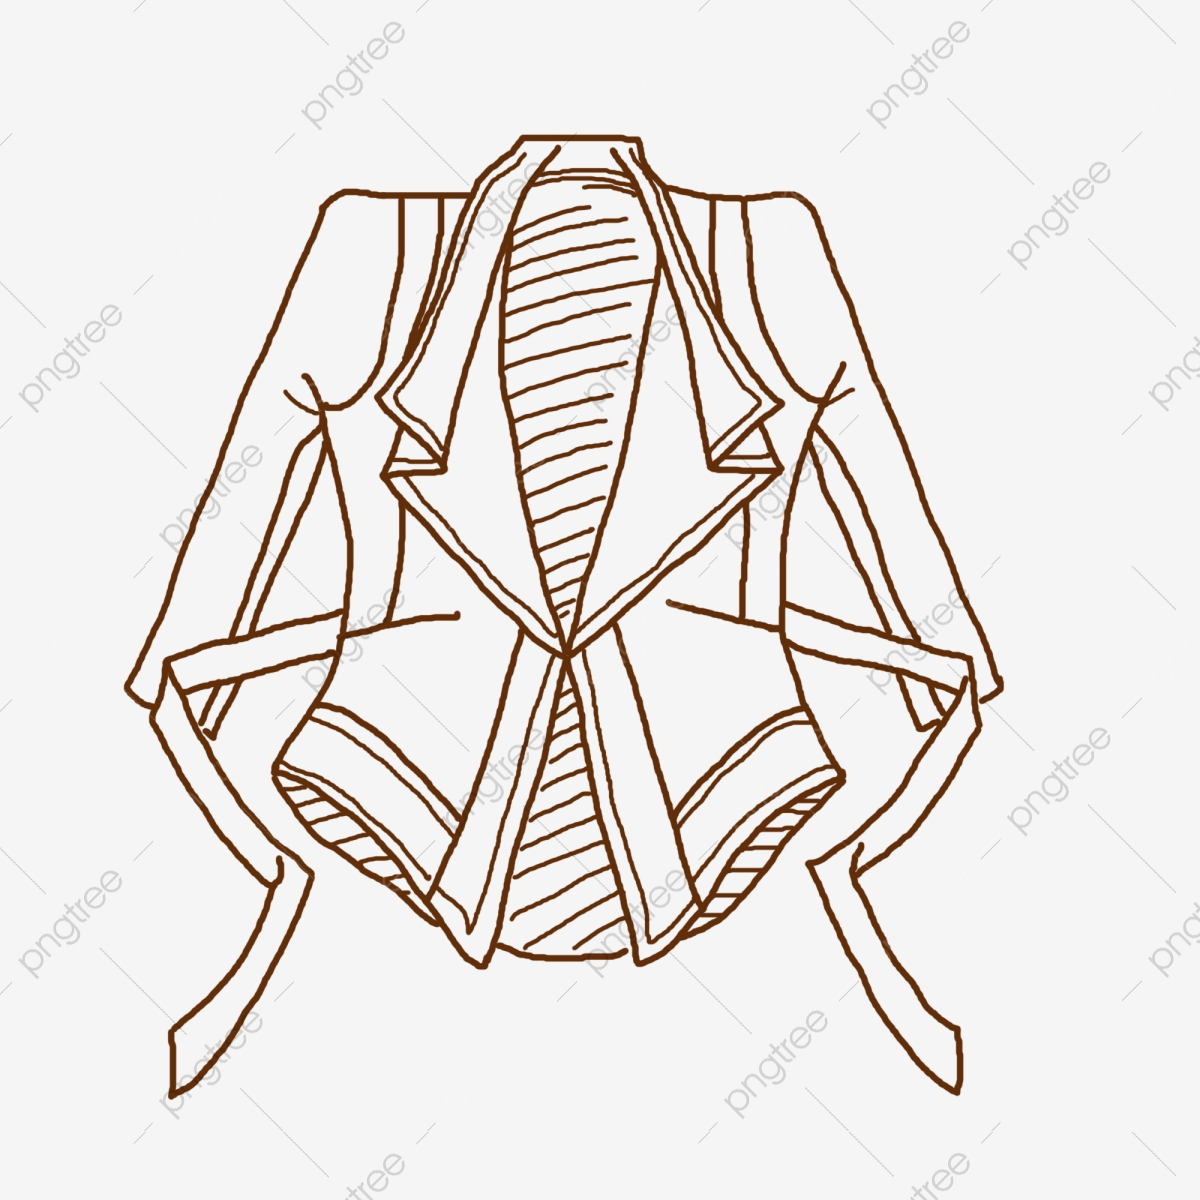 Hand Painted Line Drawing Leather Jacket Clothing Small Version Of Clothing Line Drawing Clothing Cartoon Illustration Png Transparent Clipart Image And Psd File For Free Download